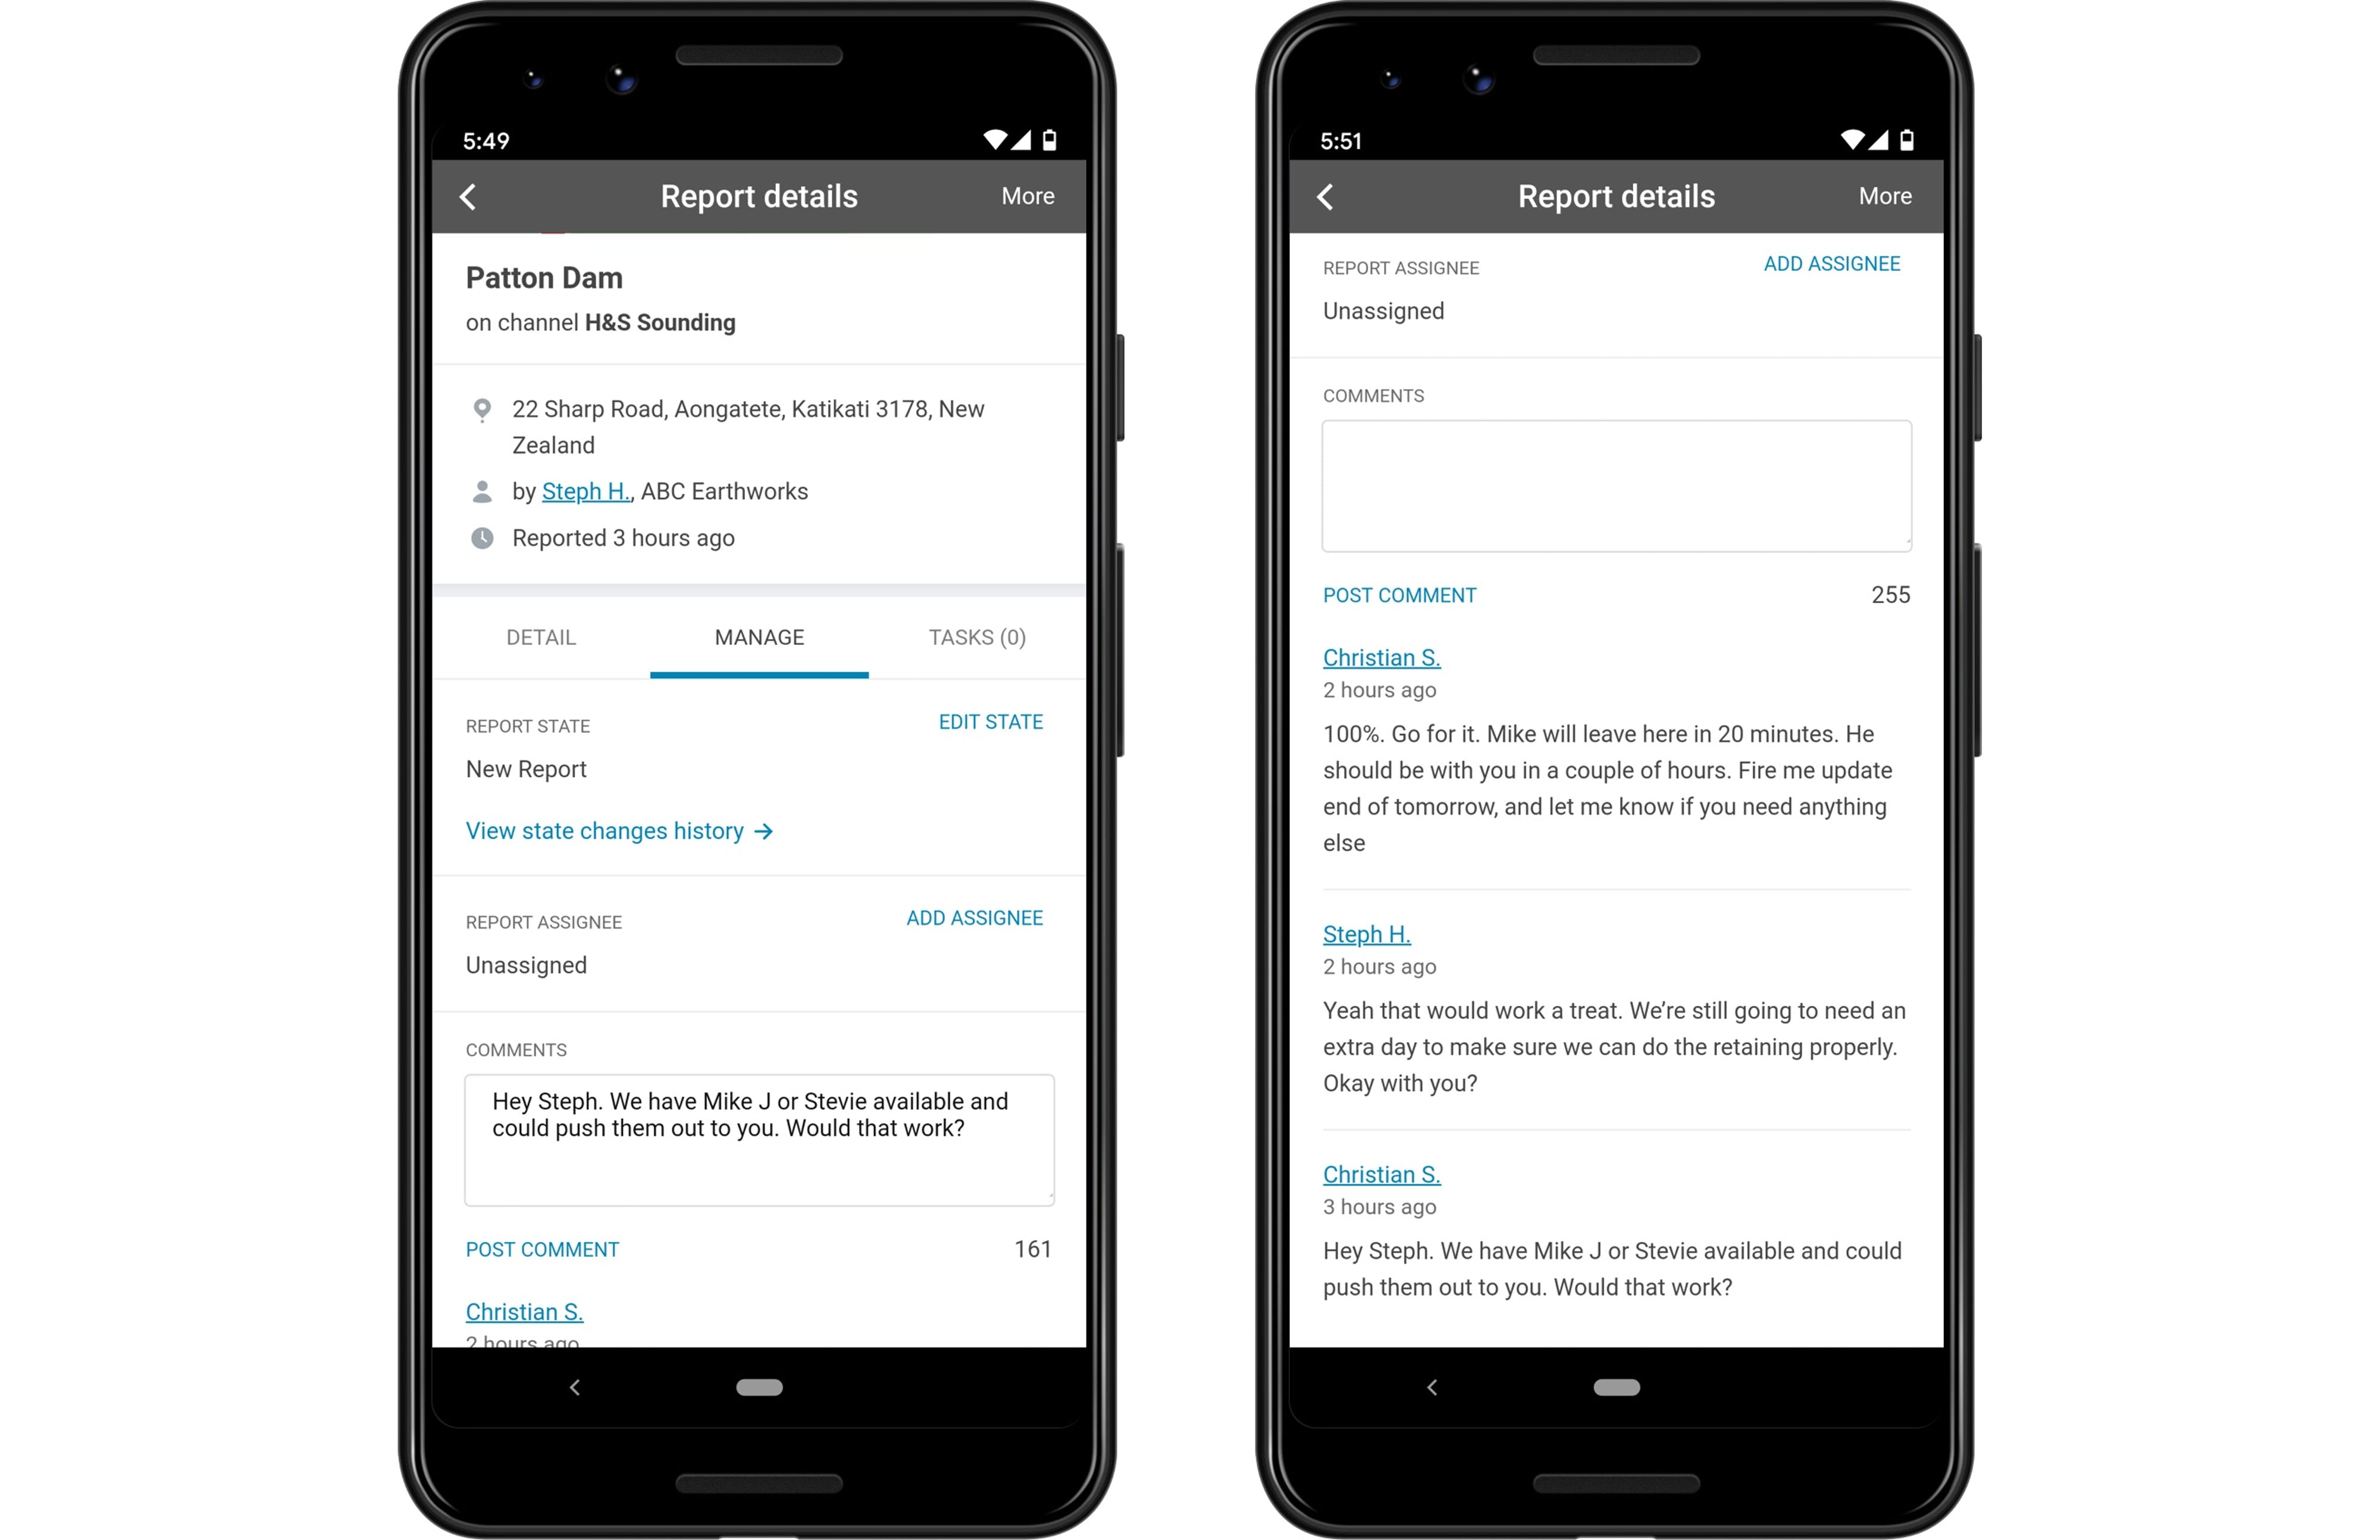 SaferMe engagement features like comments, and tasks help your business get ahead